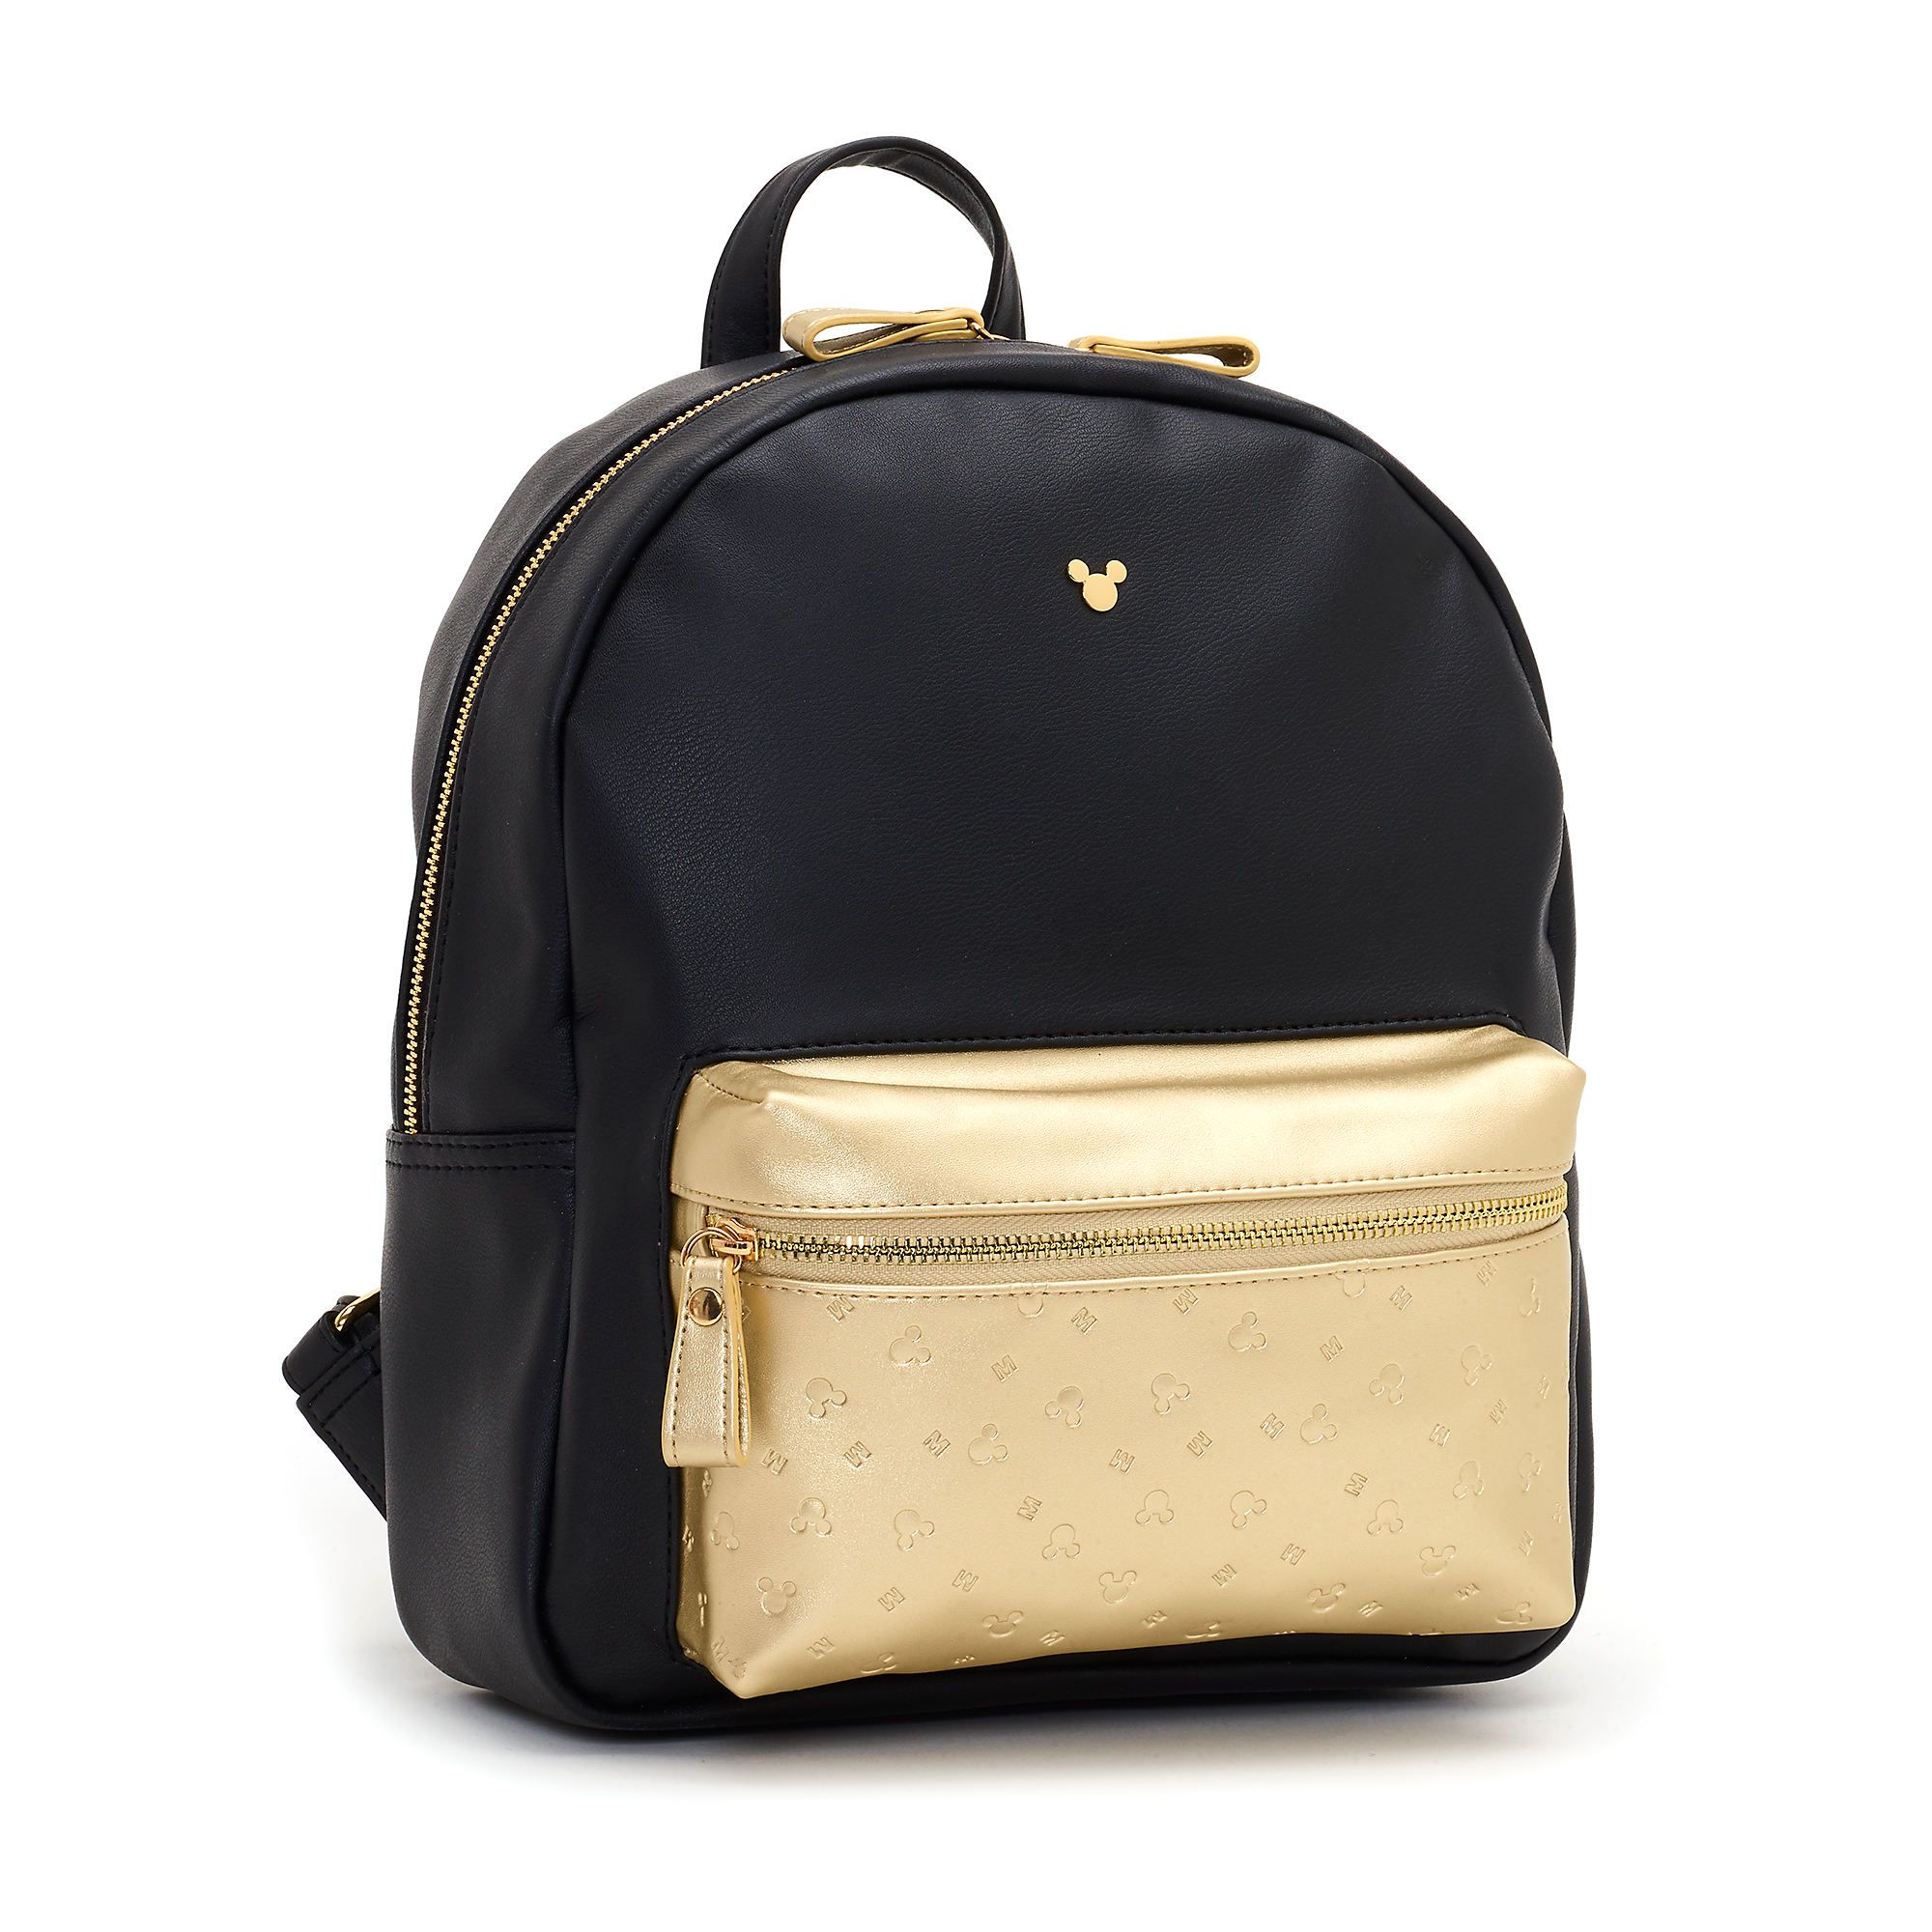 4263b4eeb Disney Store Mickey Mouse Black and Gold Backpack | Accessories ...